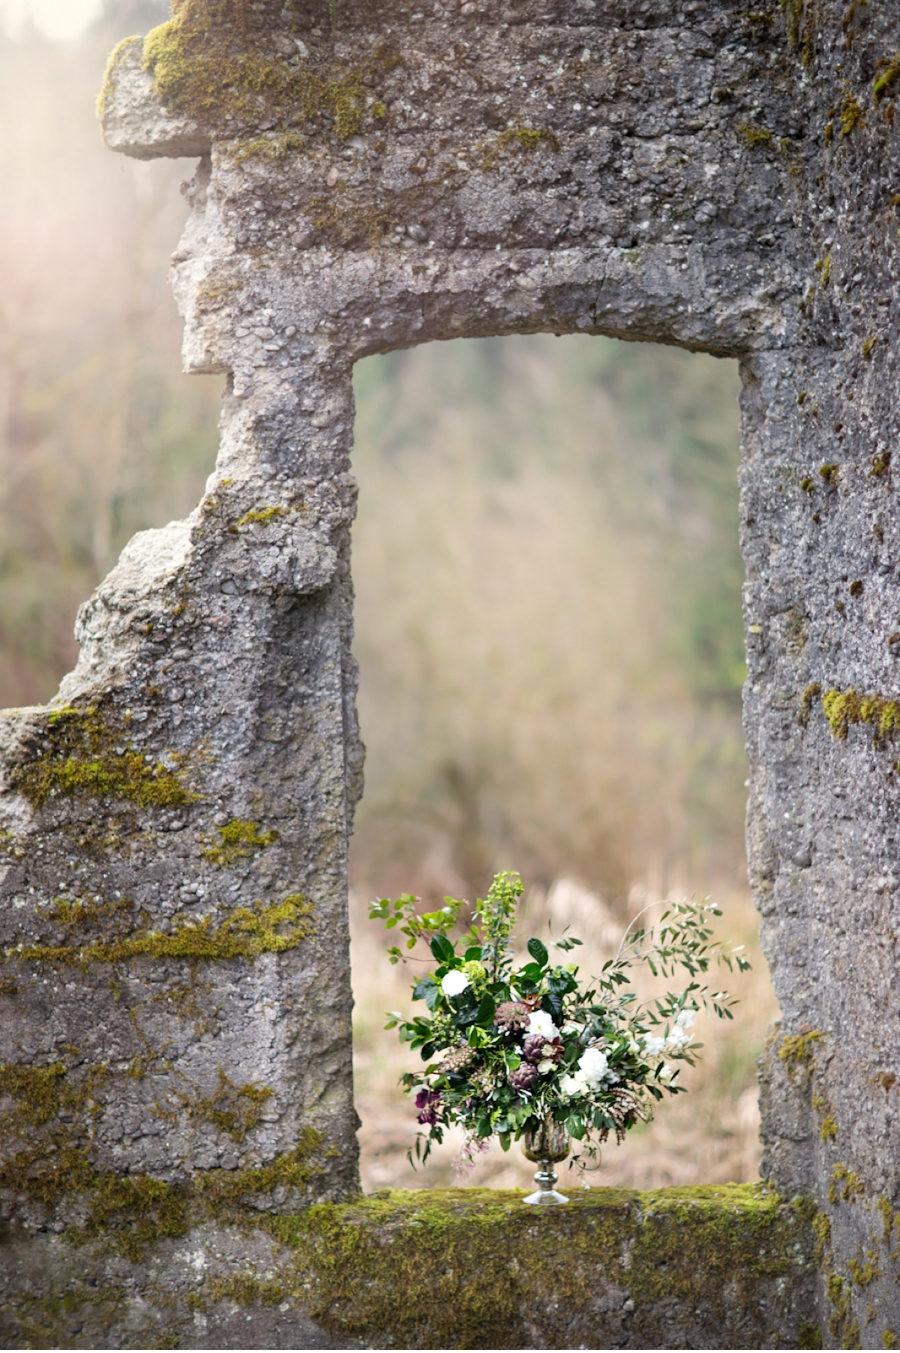 Floral-Arrangement-with-Ruins